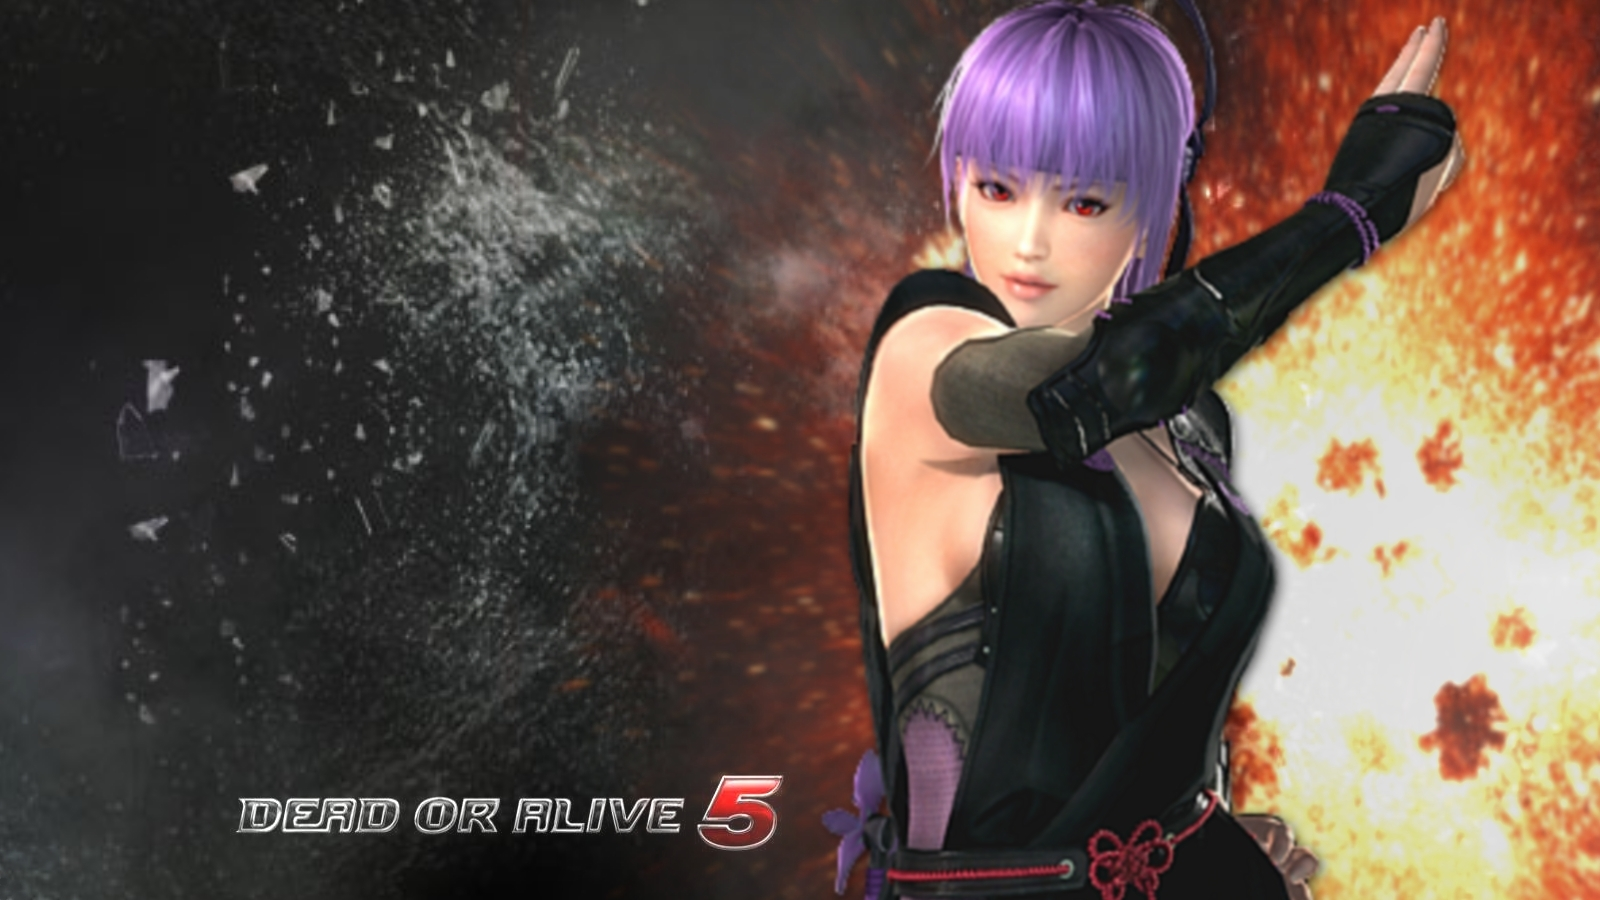 Dead or alive 5 wallpaper 78 Wallpapers 3D Wallpapers 1600x900